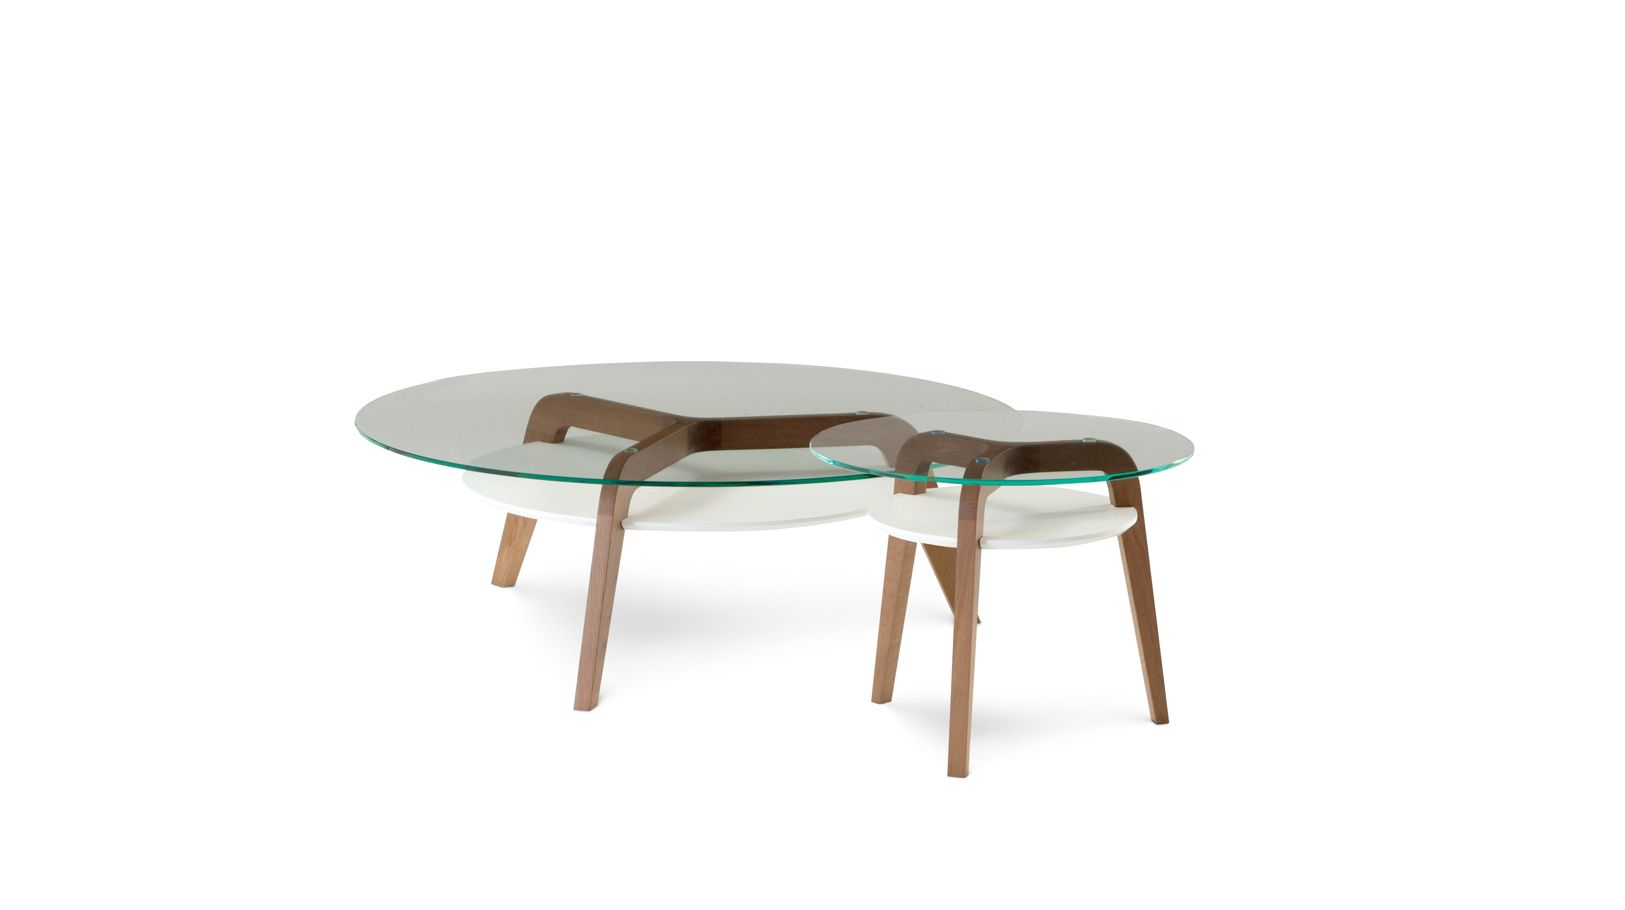 Flying glass cocktail table roche bobois - Table basse roche bobois ...